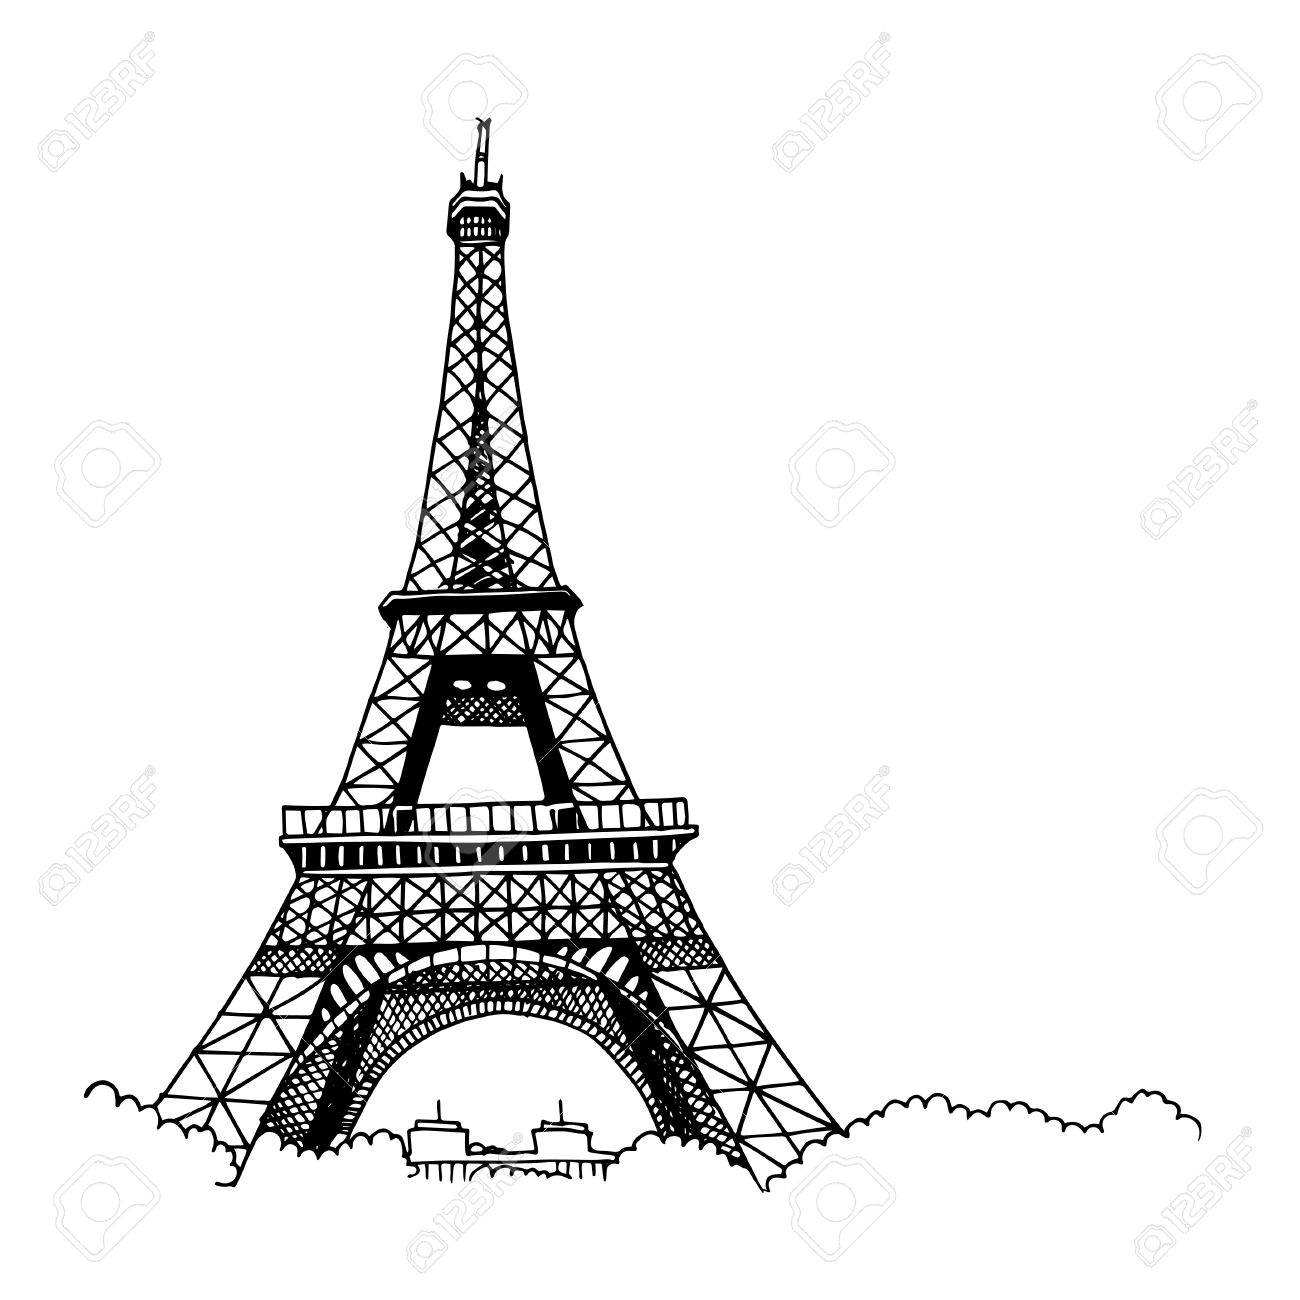 Hand drawn Eiffel Tower. Simple sketch style. Black contour isolated on white background. - 58971542